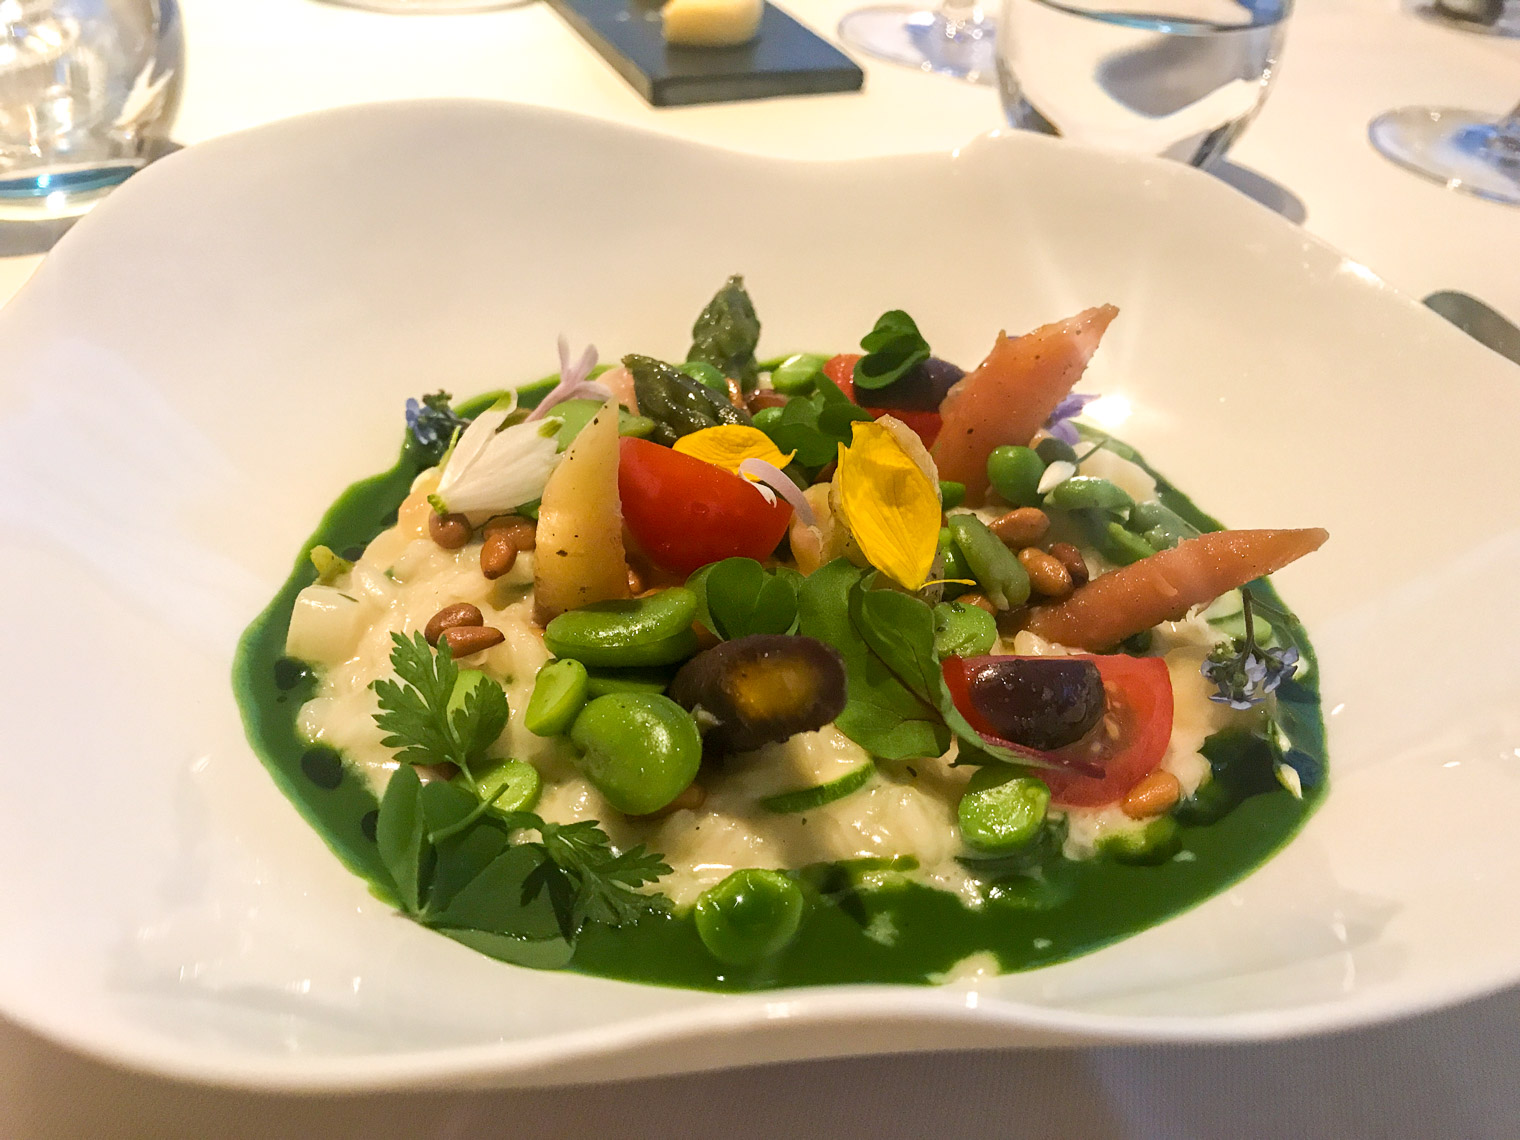 Vegetable risotto at Raymond Blanc restaurant in Oxfordshire